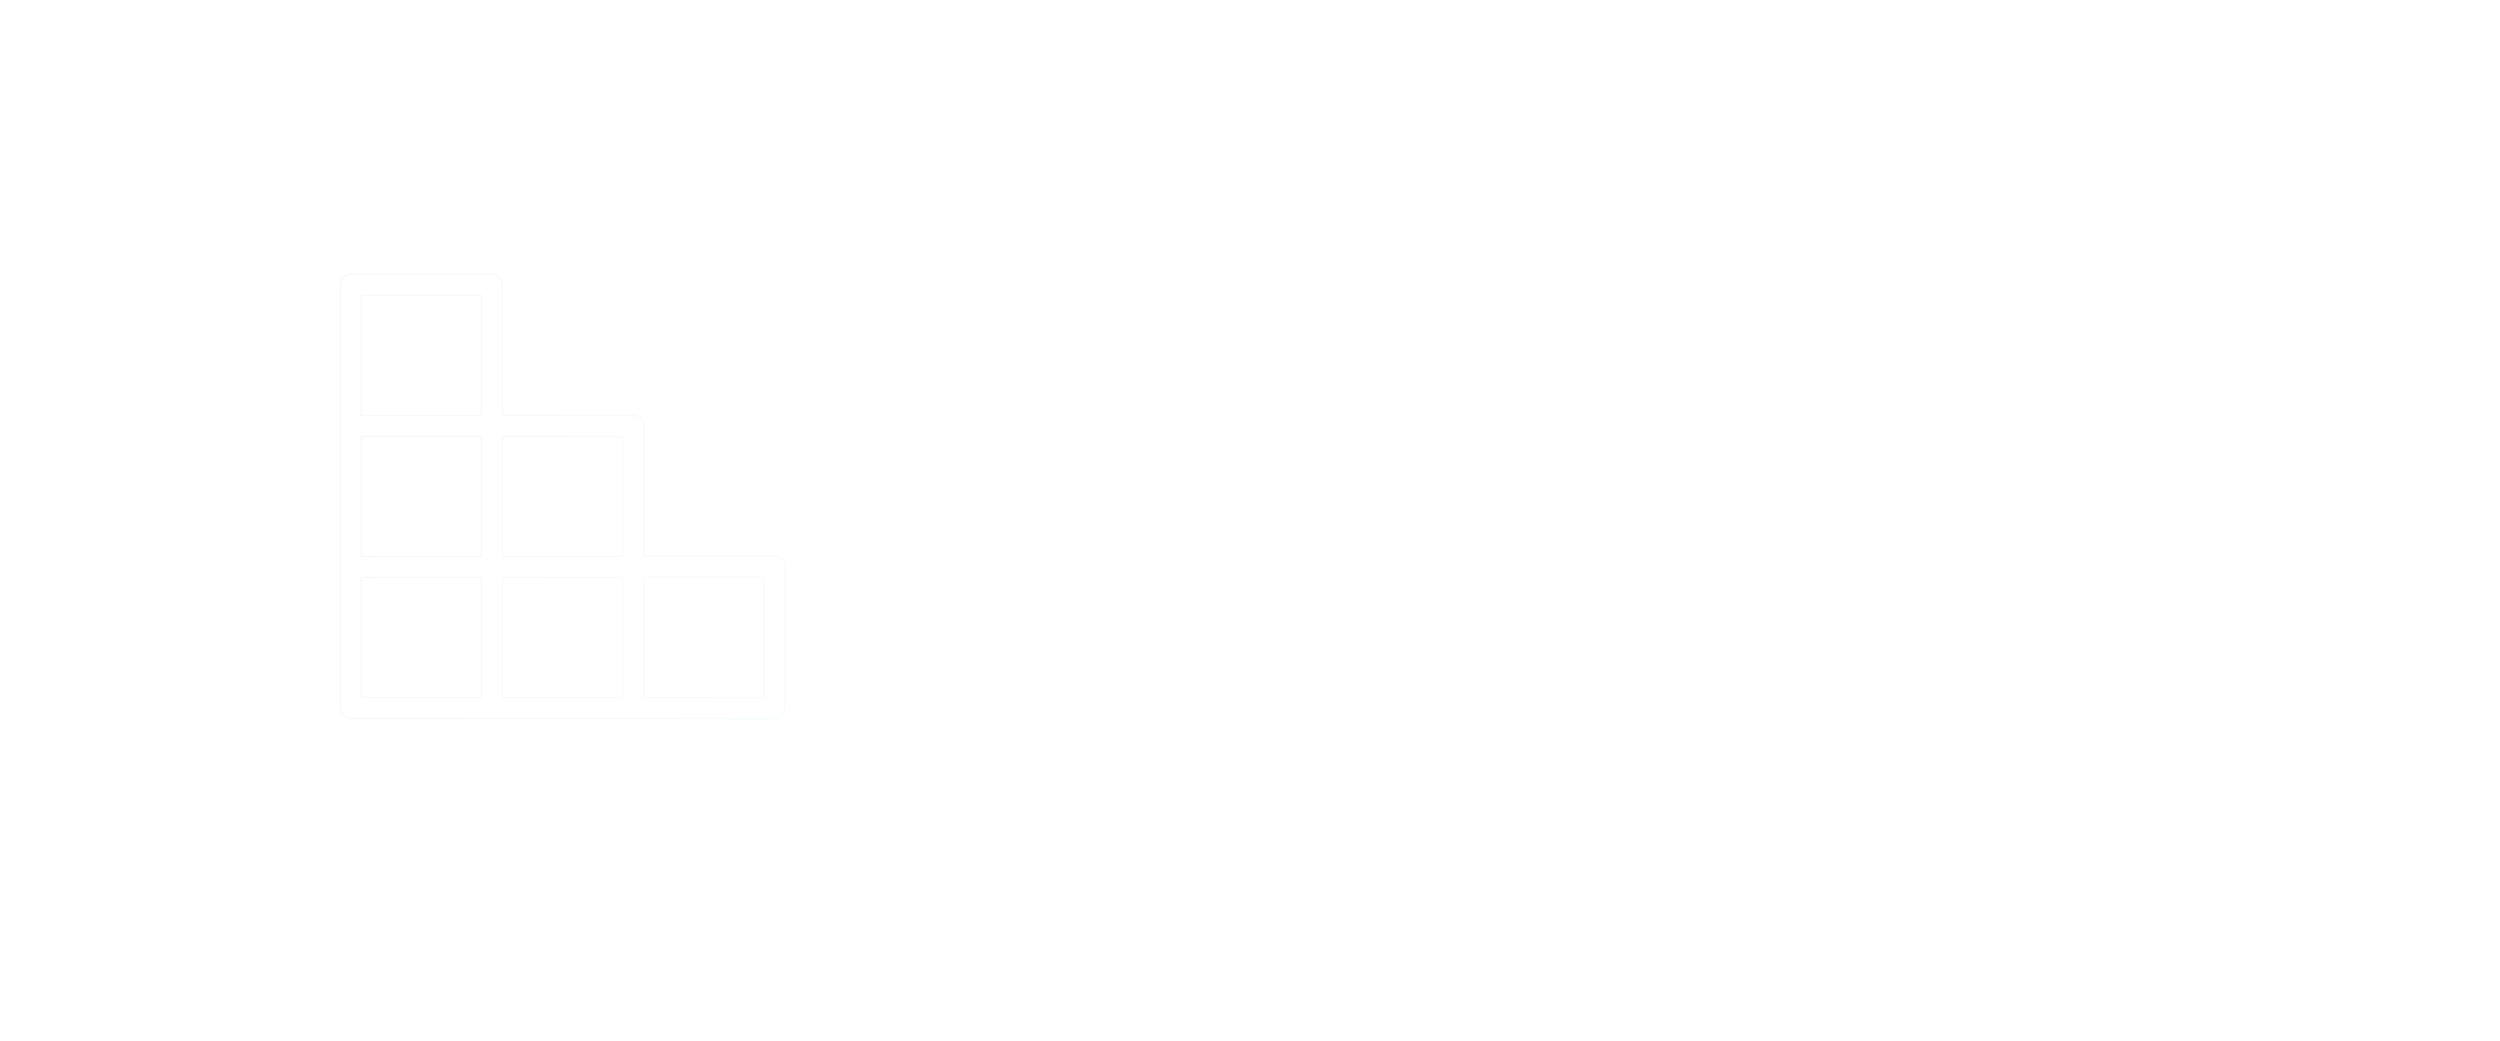 White logo - no background.png